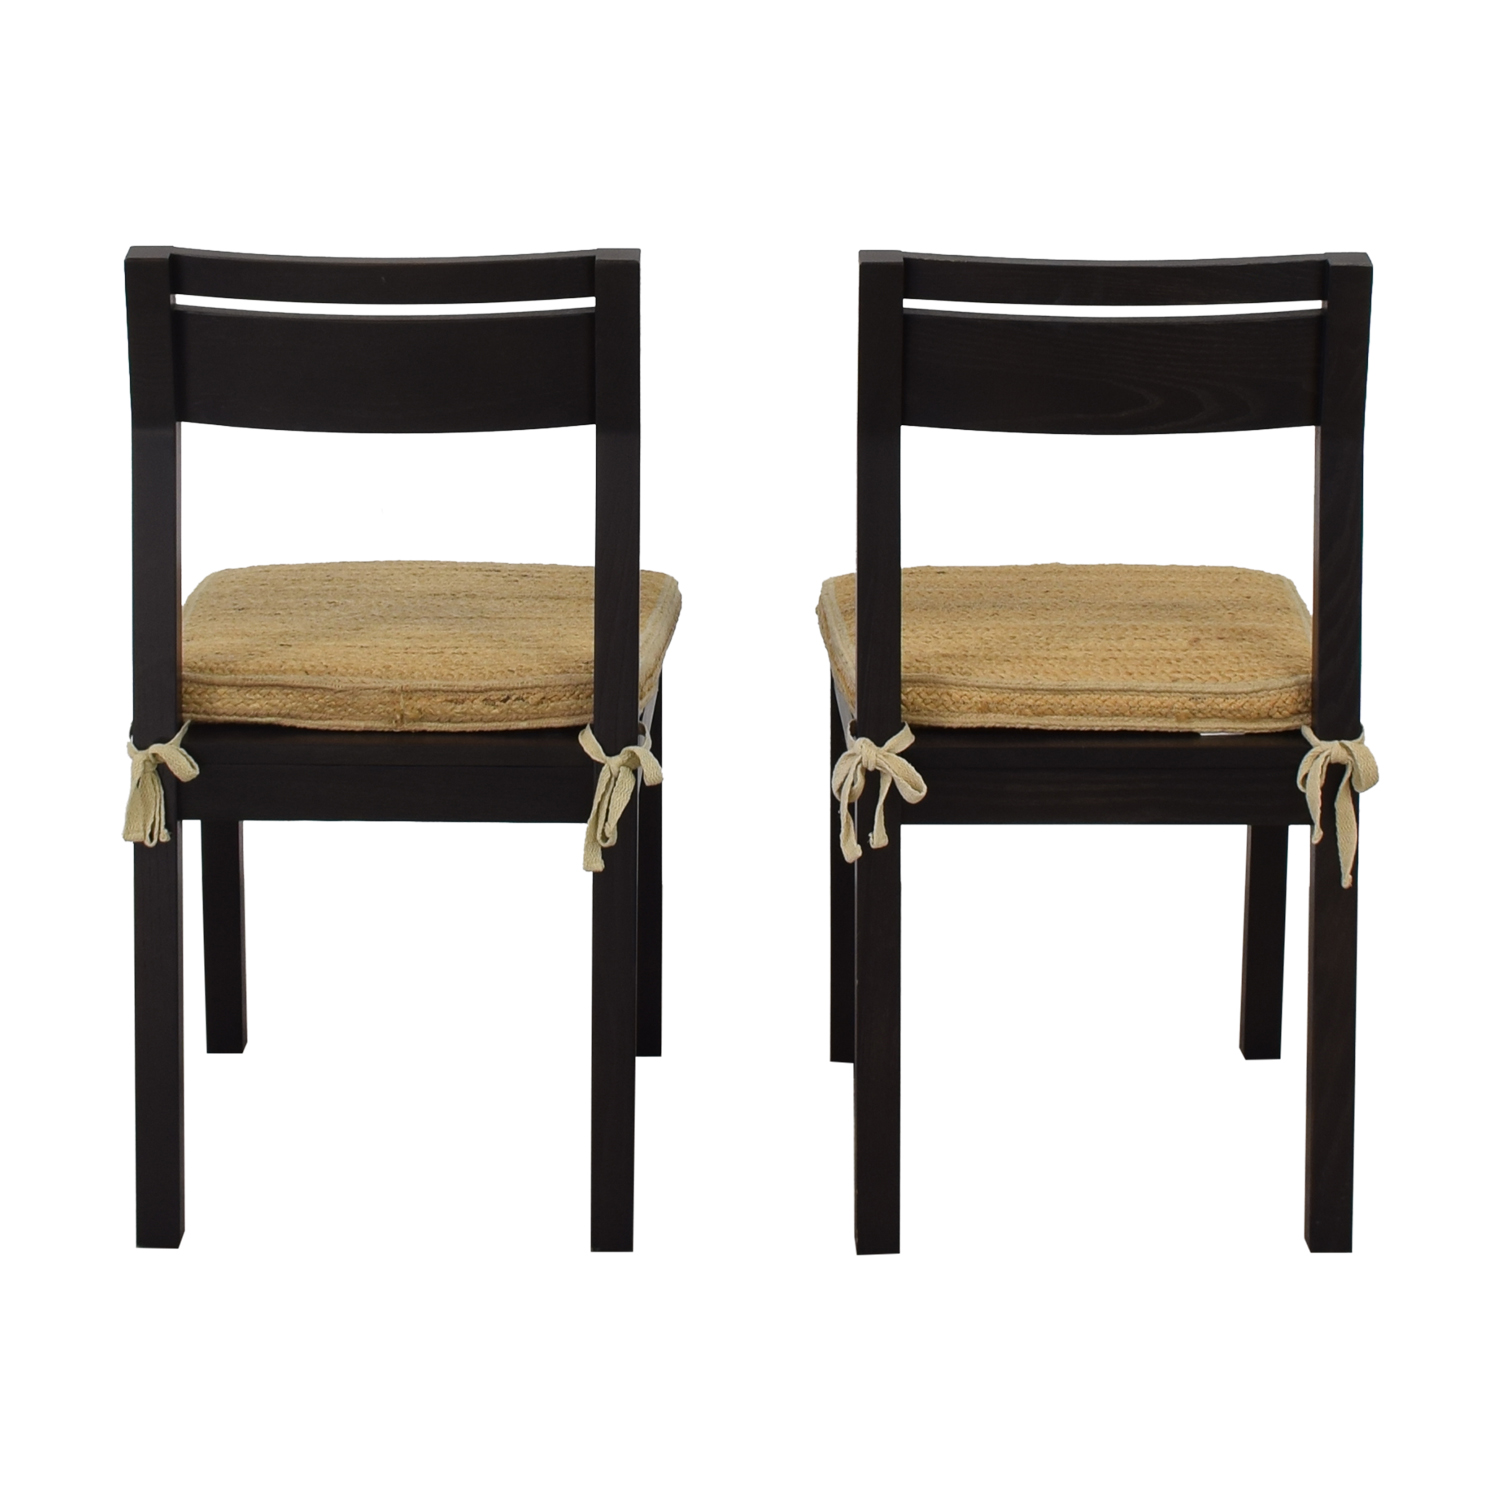 West Elm West Elm Dining Chairs with Woven Cushions nj